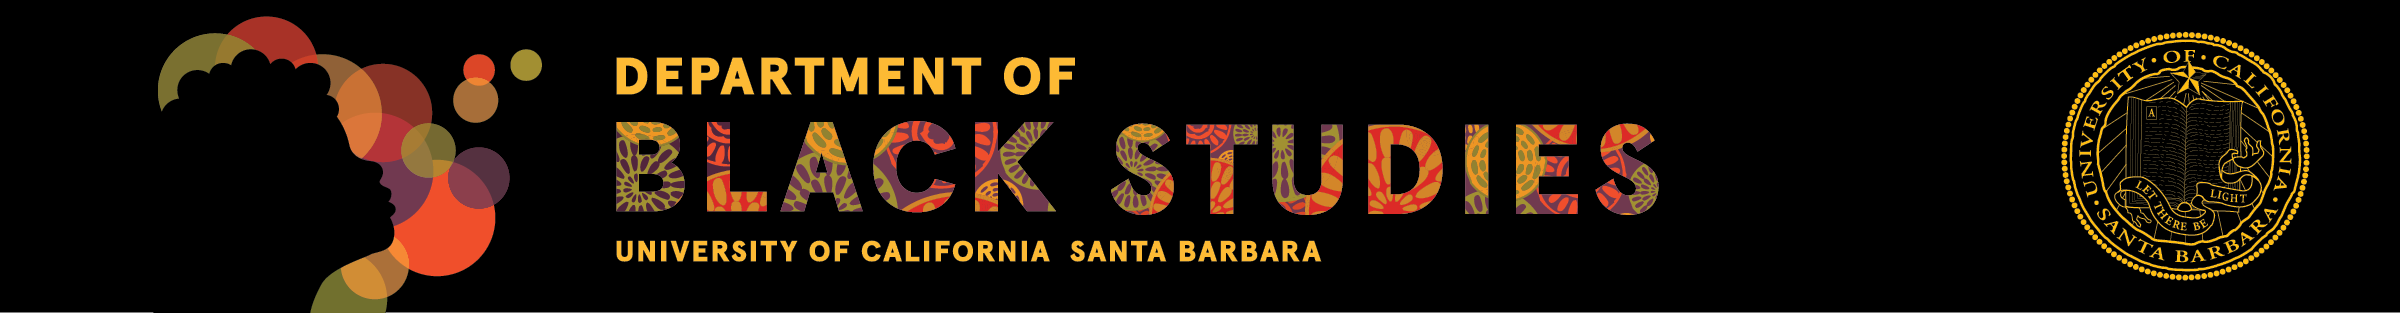 Department of Black Studies - UC Santa Barbara